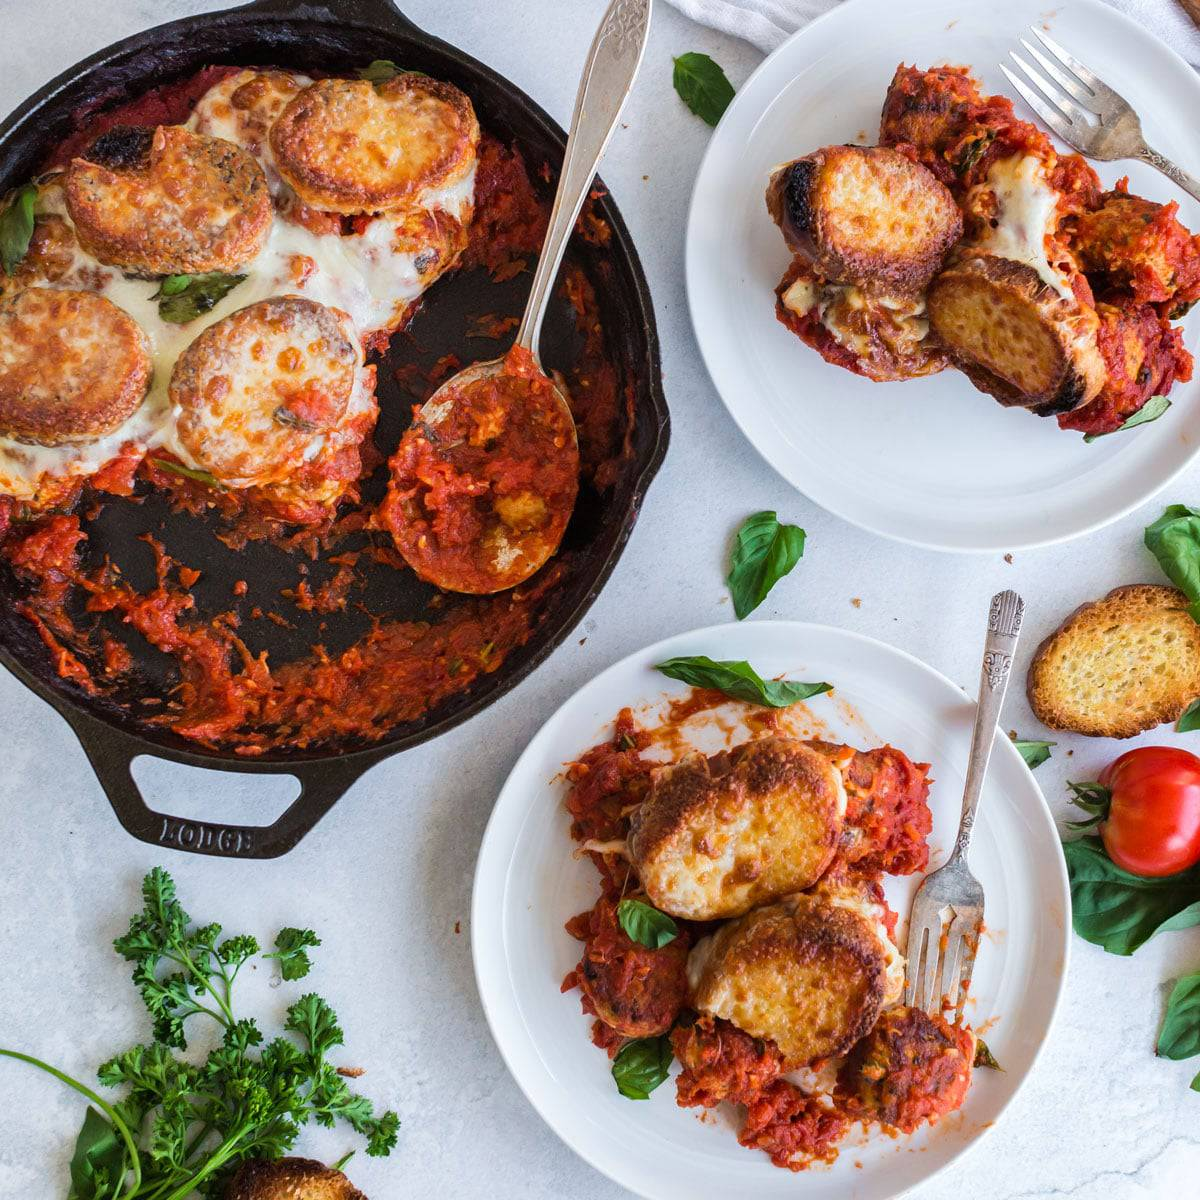 A skillet and two plates of meatball sub casserole